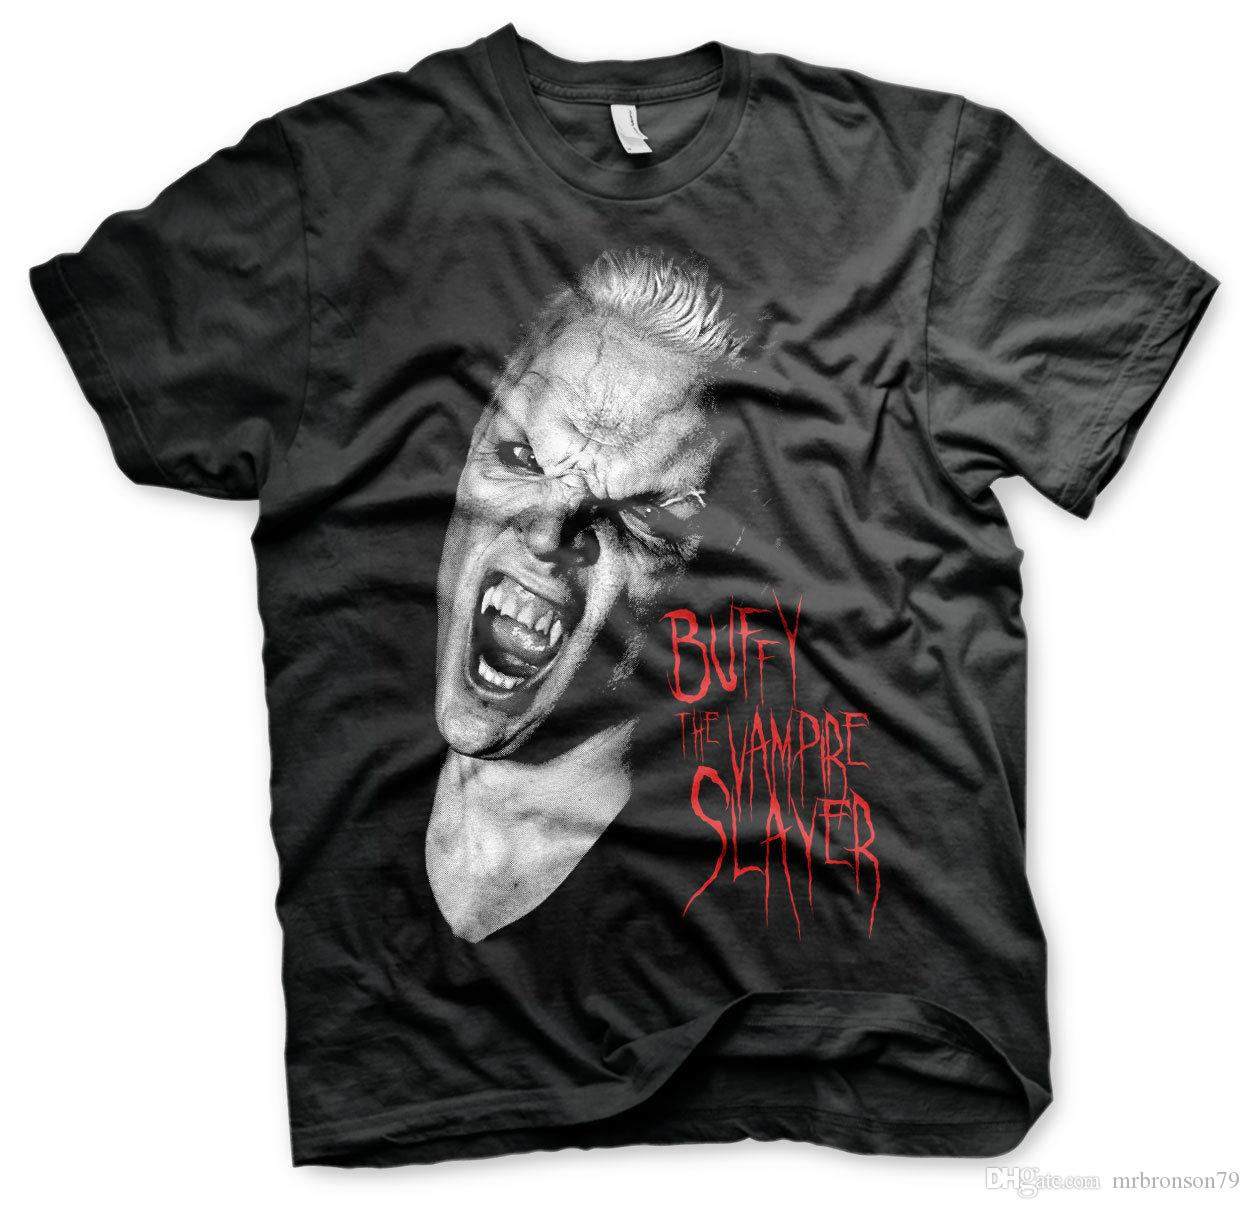 Buffy The Vampire Slayer - Camiseta oficial de Spike para hombres con licencia S-XXL